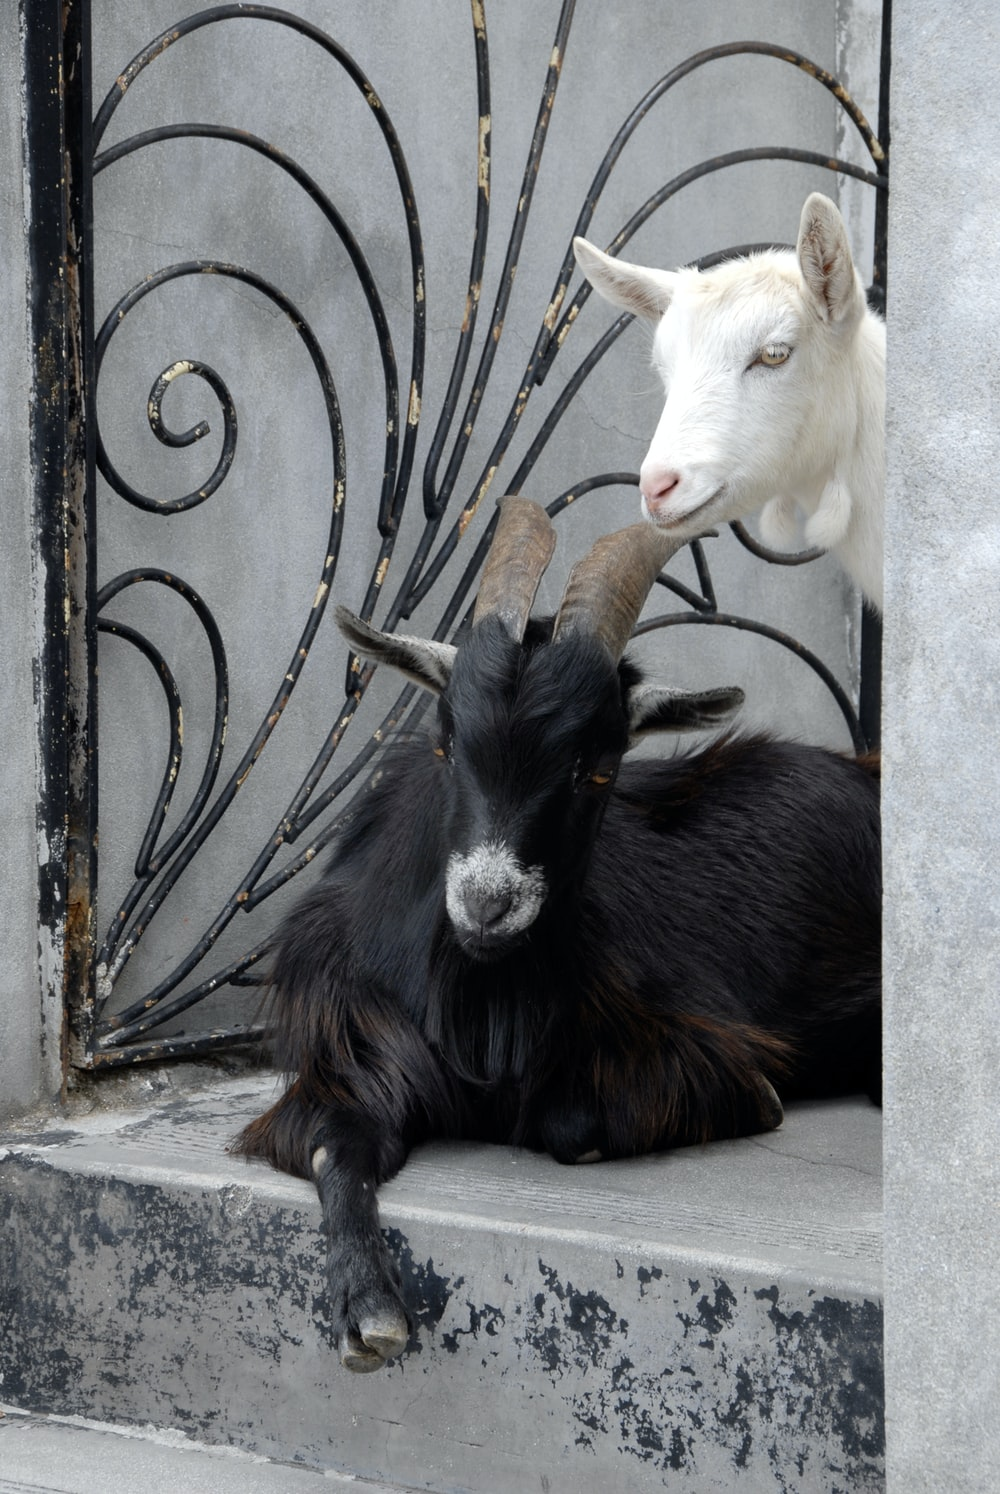 a black and a white goat in gated entry